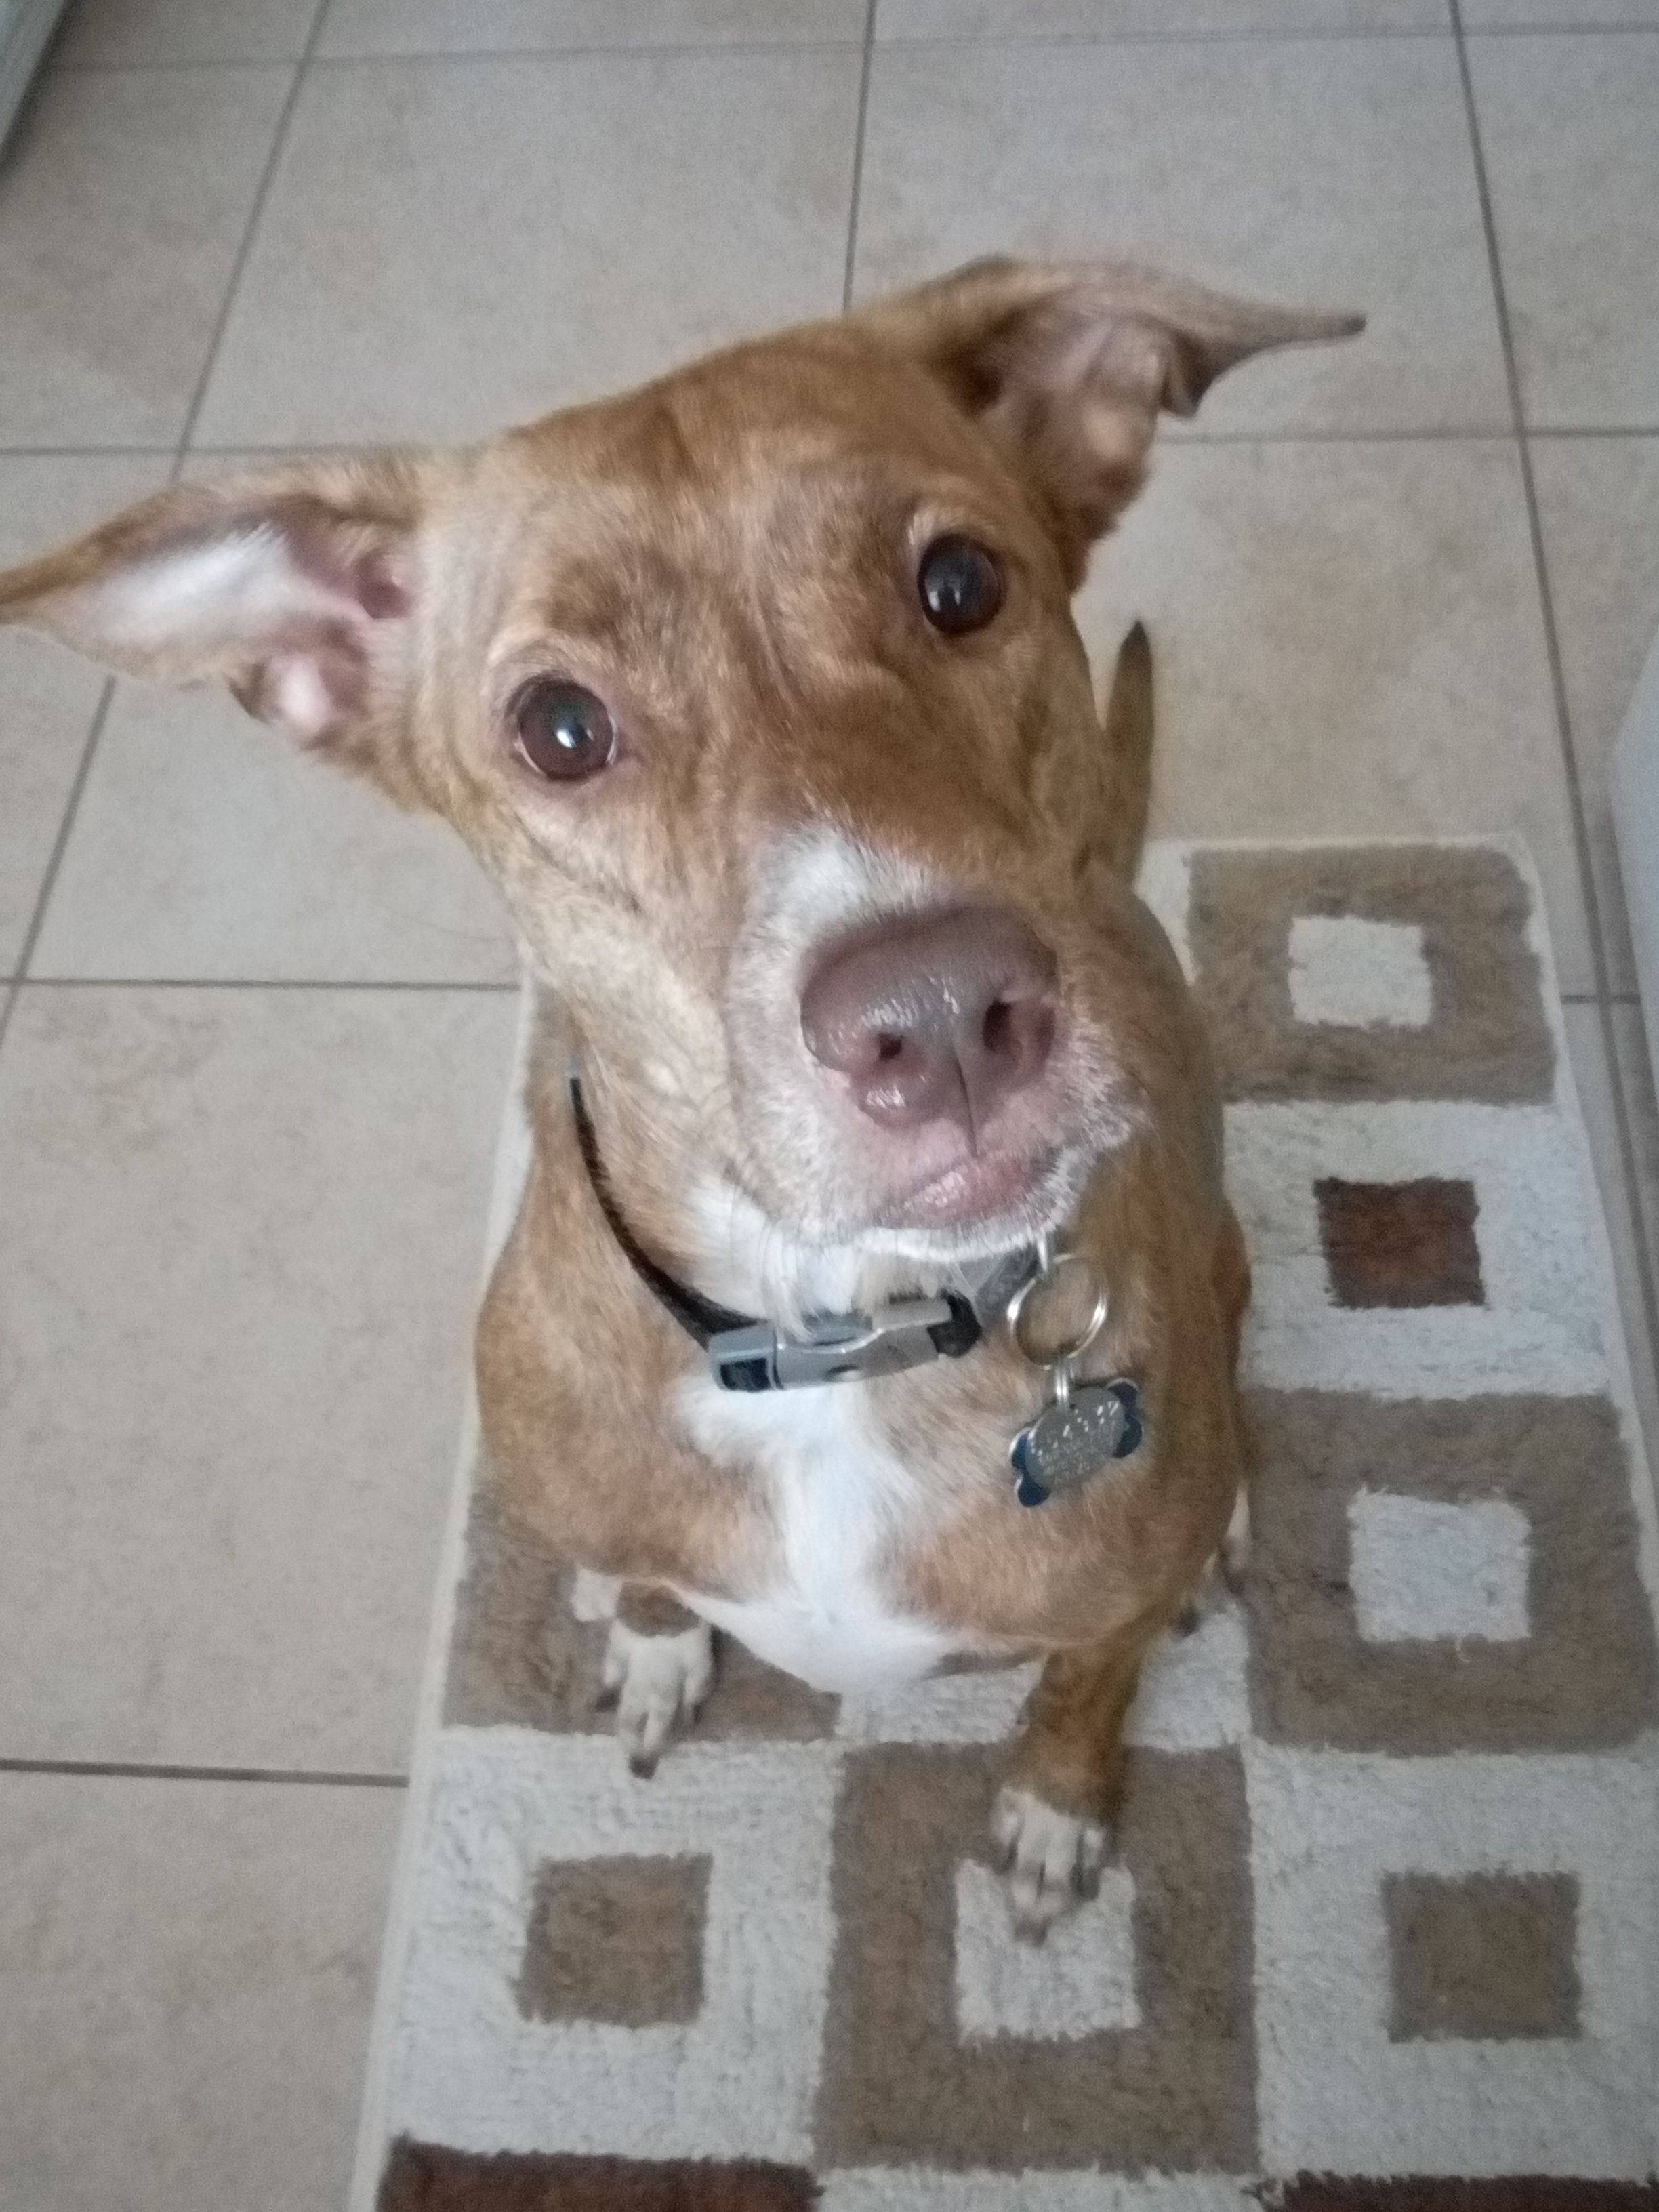 Meet our latest success story, Amber! Her new mom writes